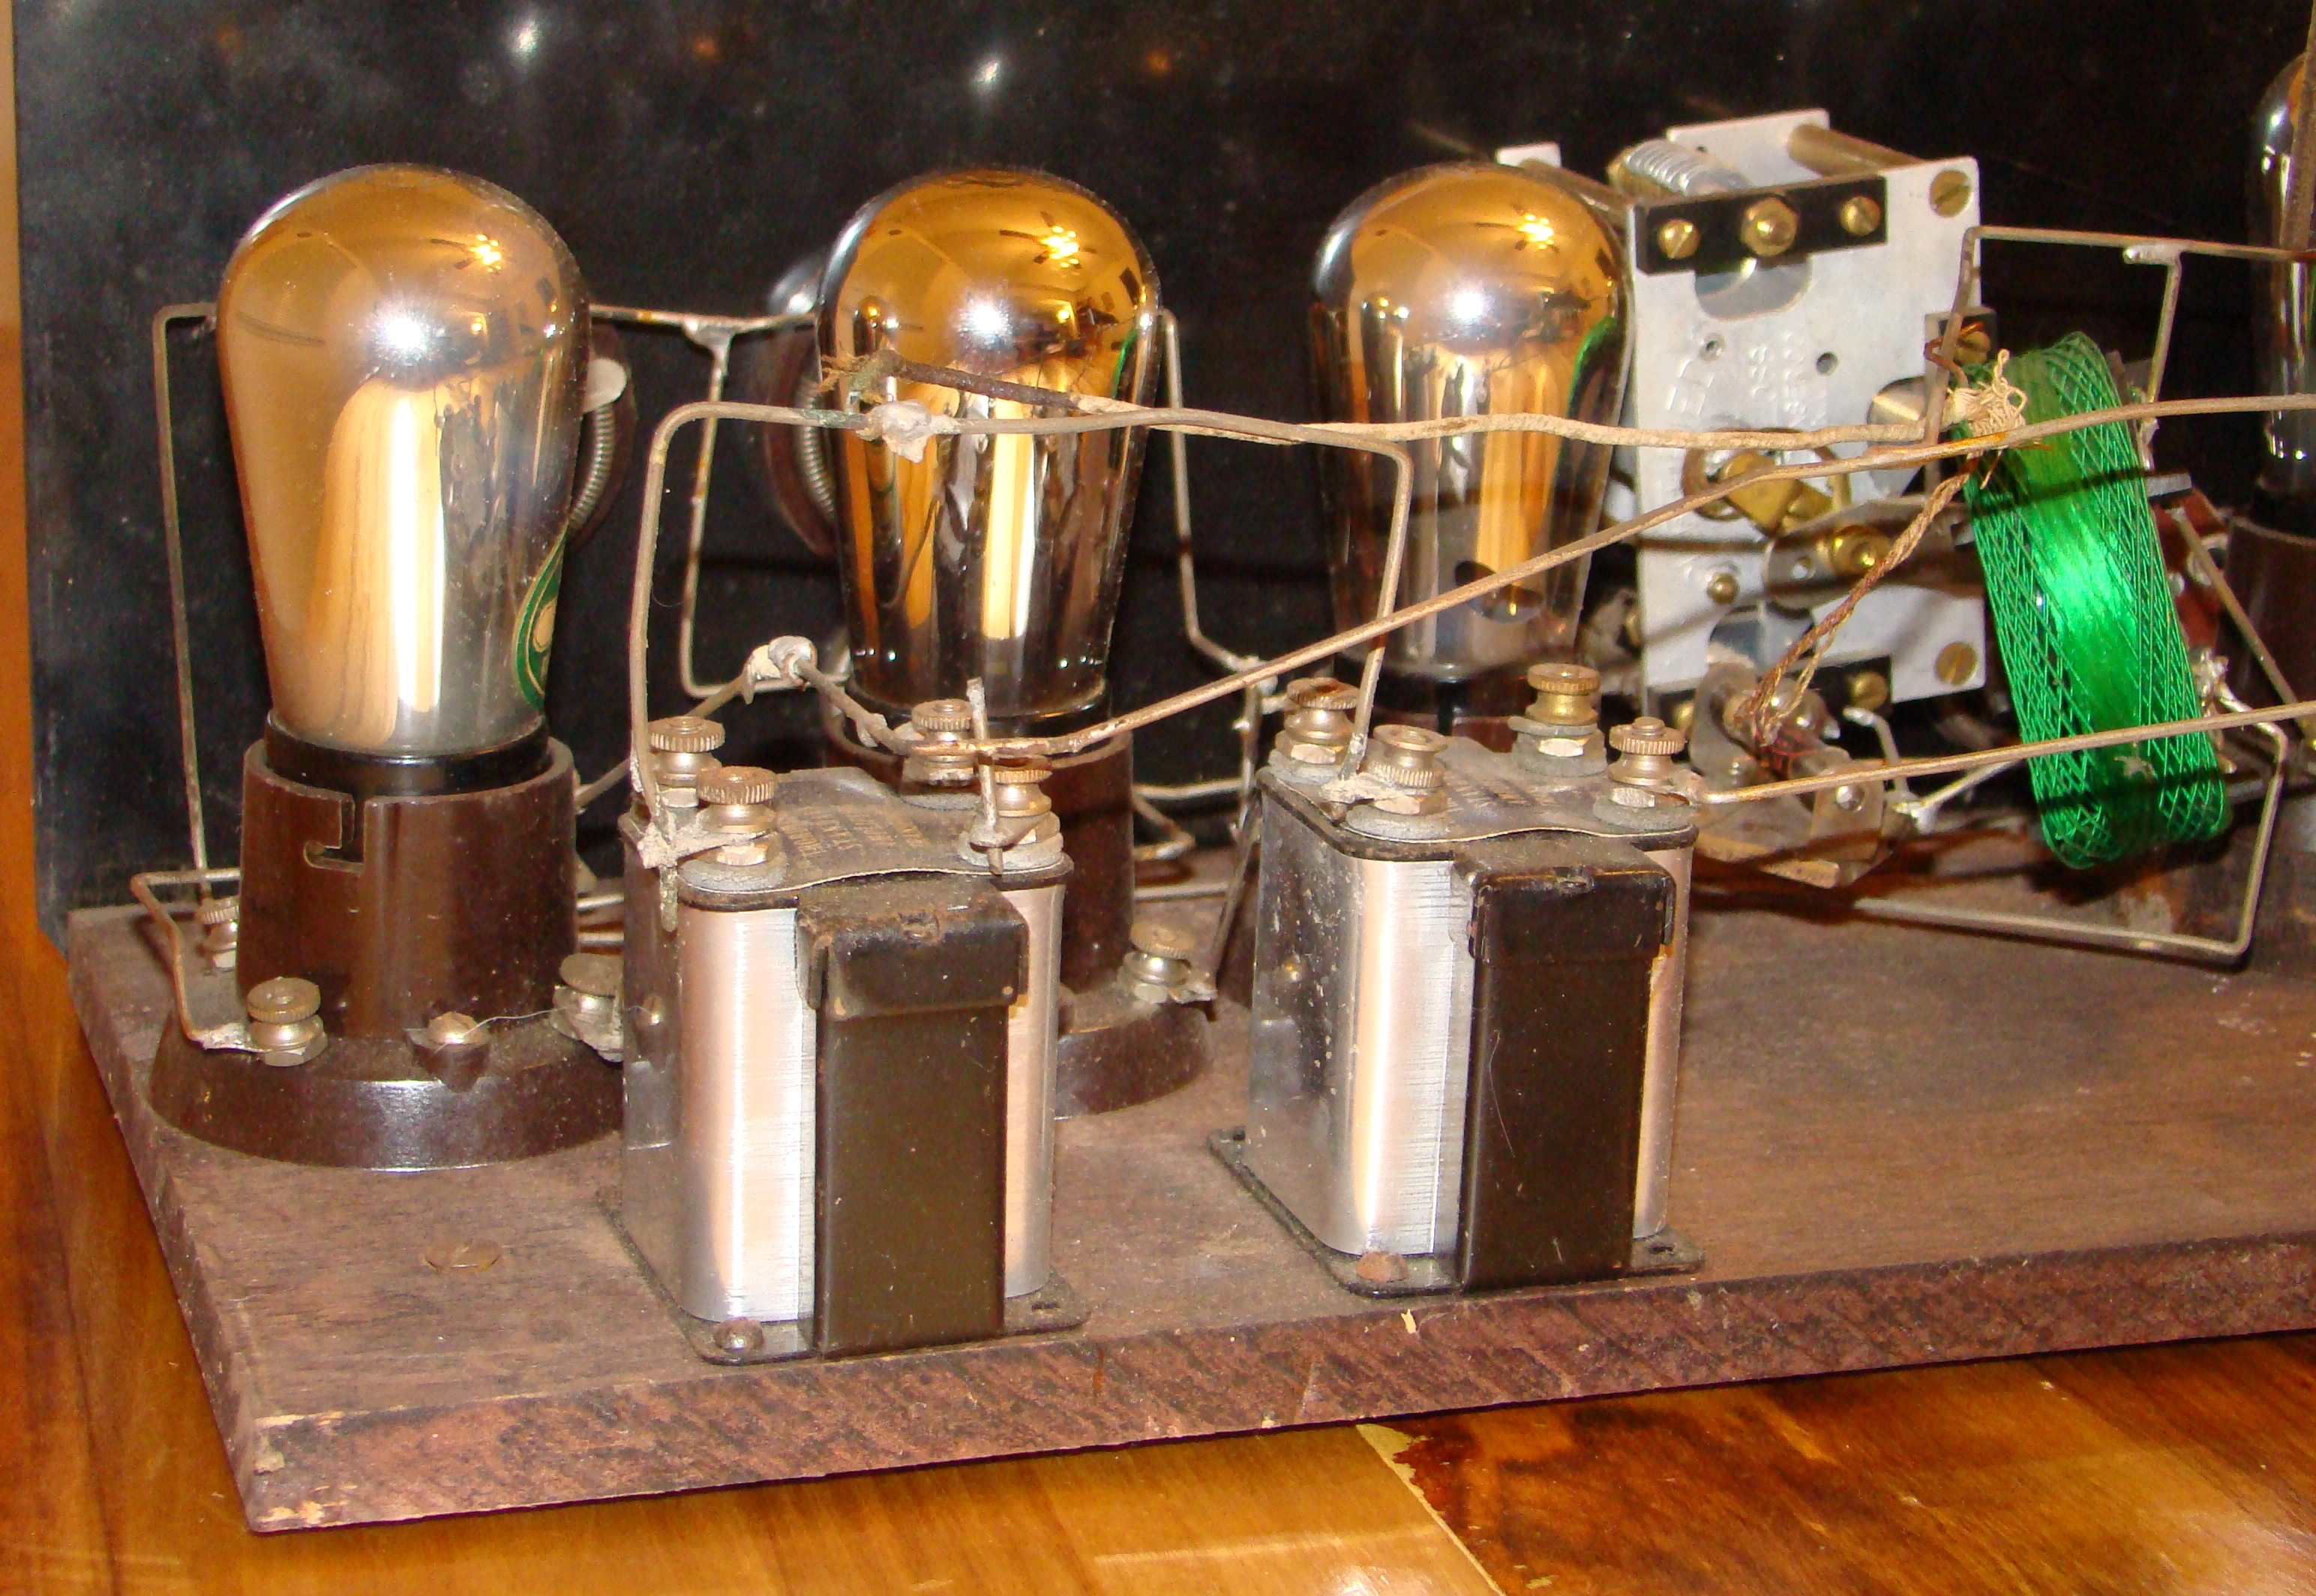 components_1920s_TRF_radio_manufactured_by_Signal.jpg